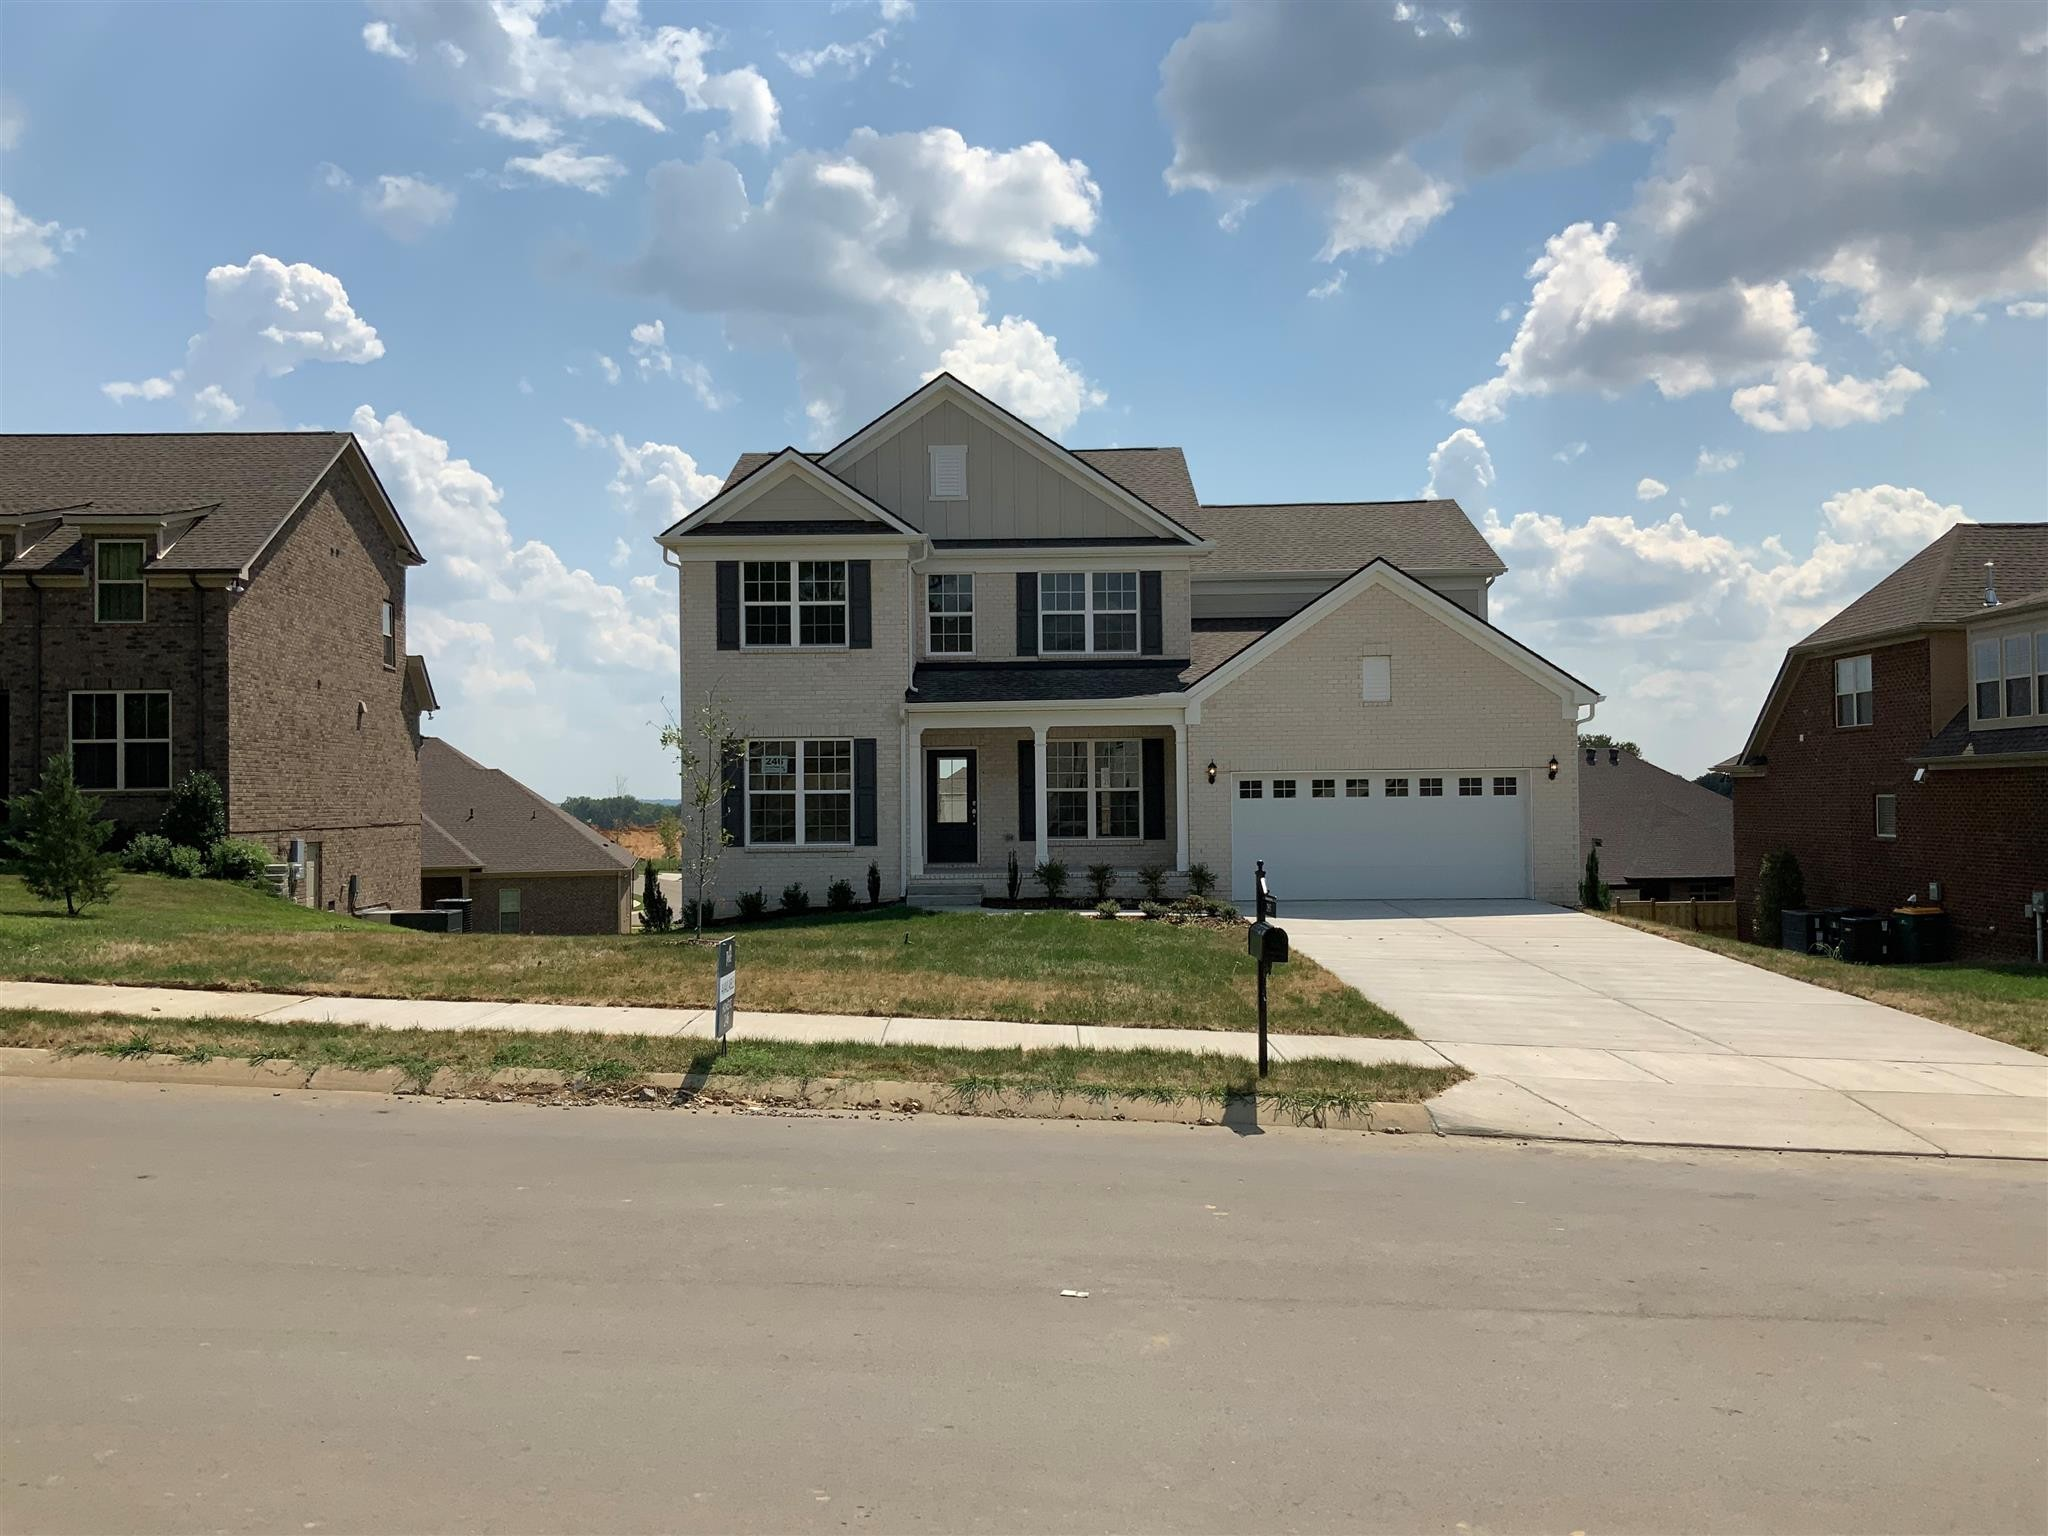 2955 Stewart Campbell Pointe, Spring Hill in Williamson County, T County, TN 37174 Home for Sale